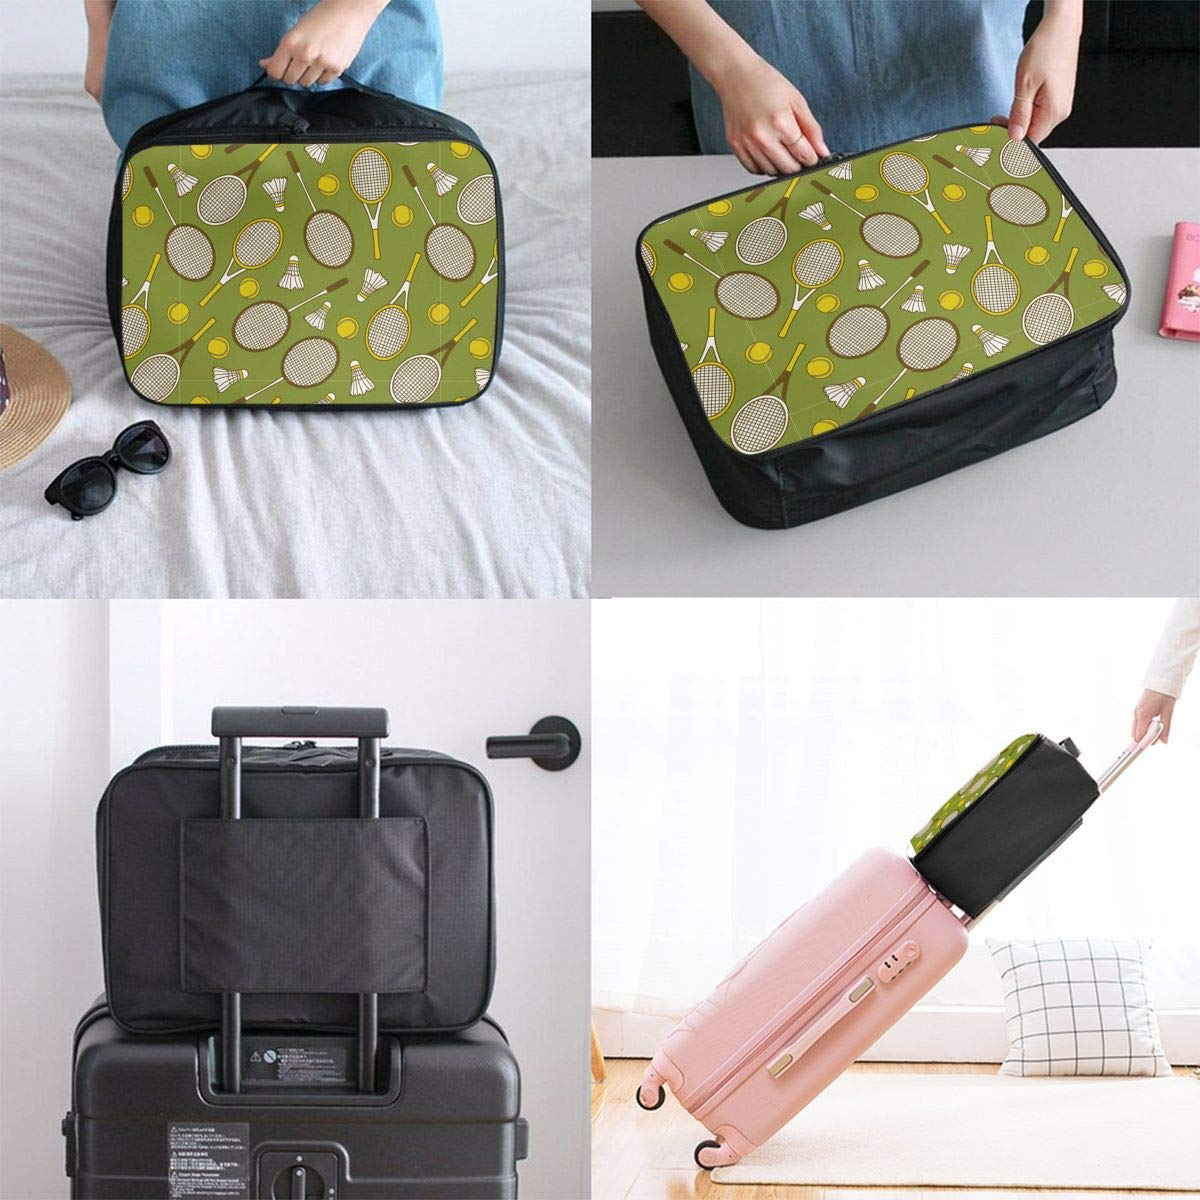 2 JTRVW Travel Luggage Trolley Bag Portable Lightweight Suitcases Duffle Tote Bag Handbag Tennis Rackets And Balls Pattern